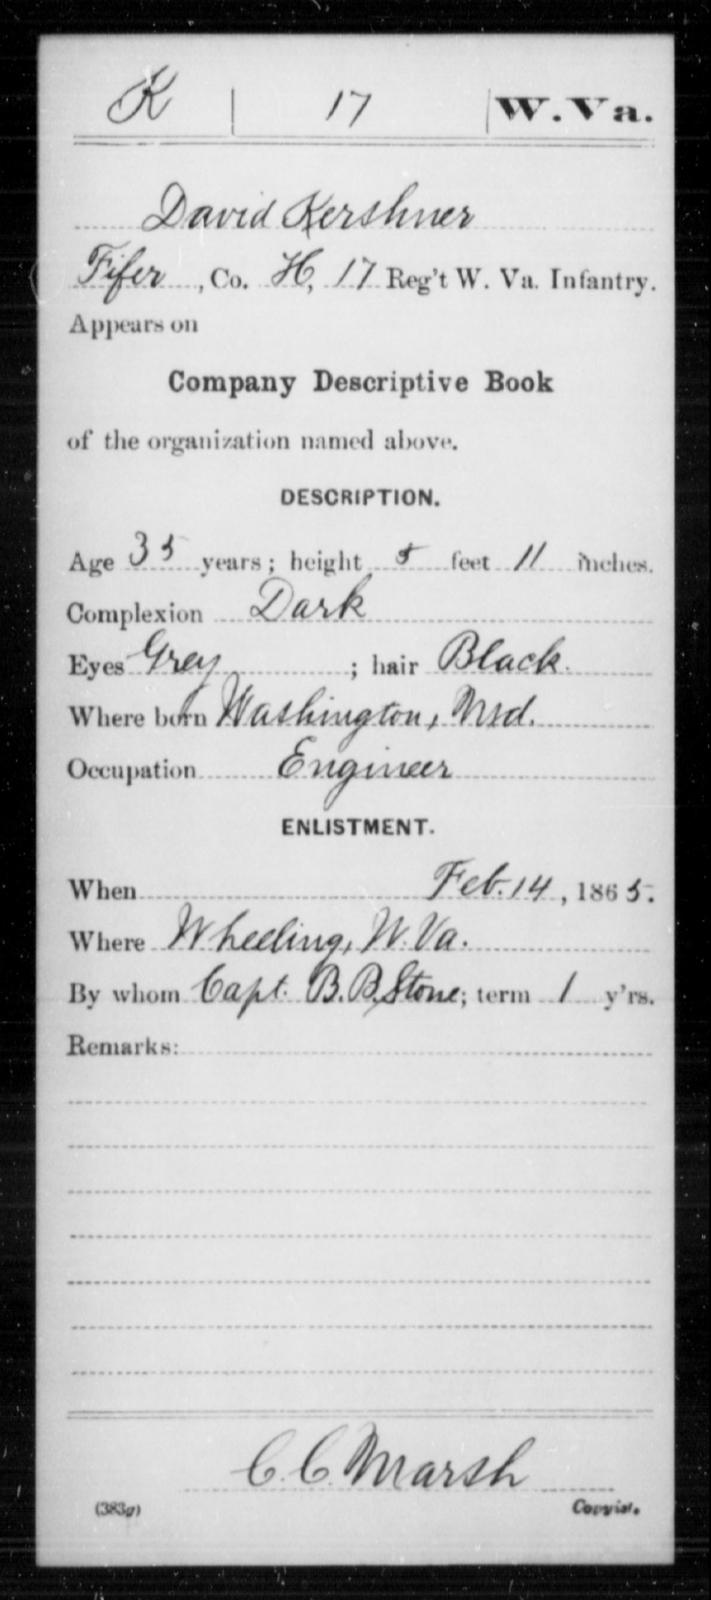 Kershner, David - Age 35, Year: 1865 - Miscellaneous Card Abstracts of Records - West Virginia